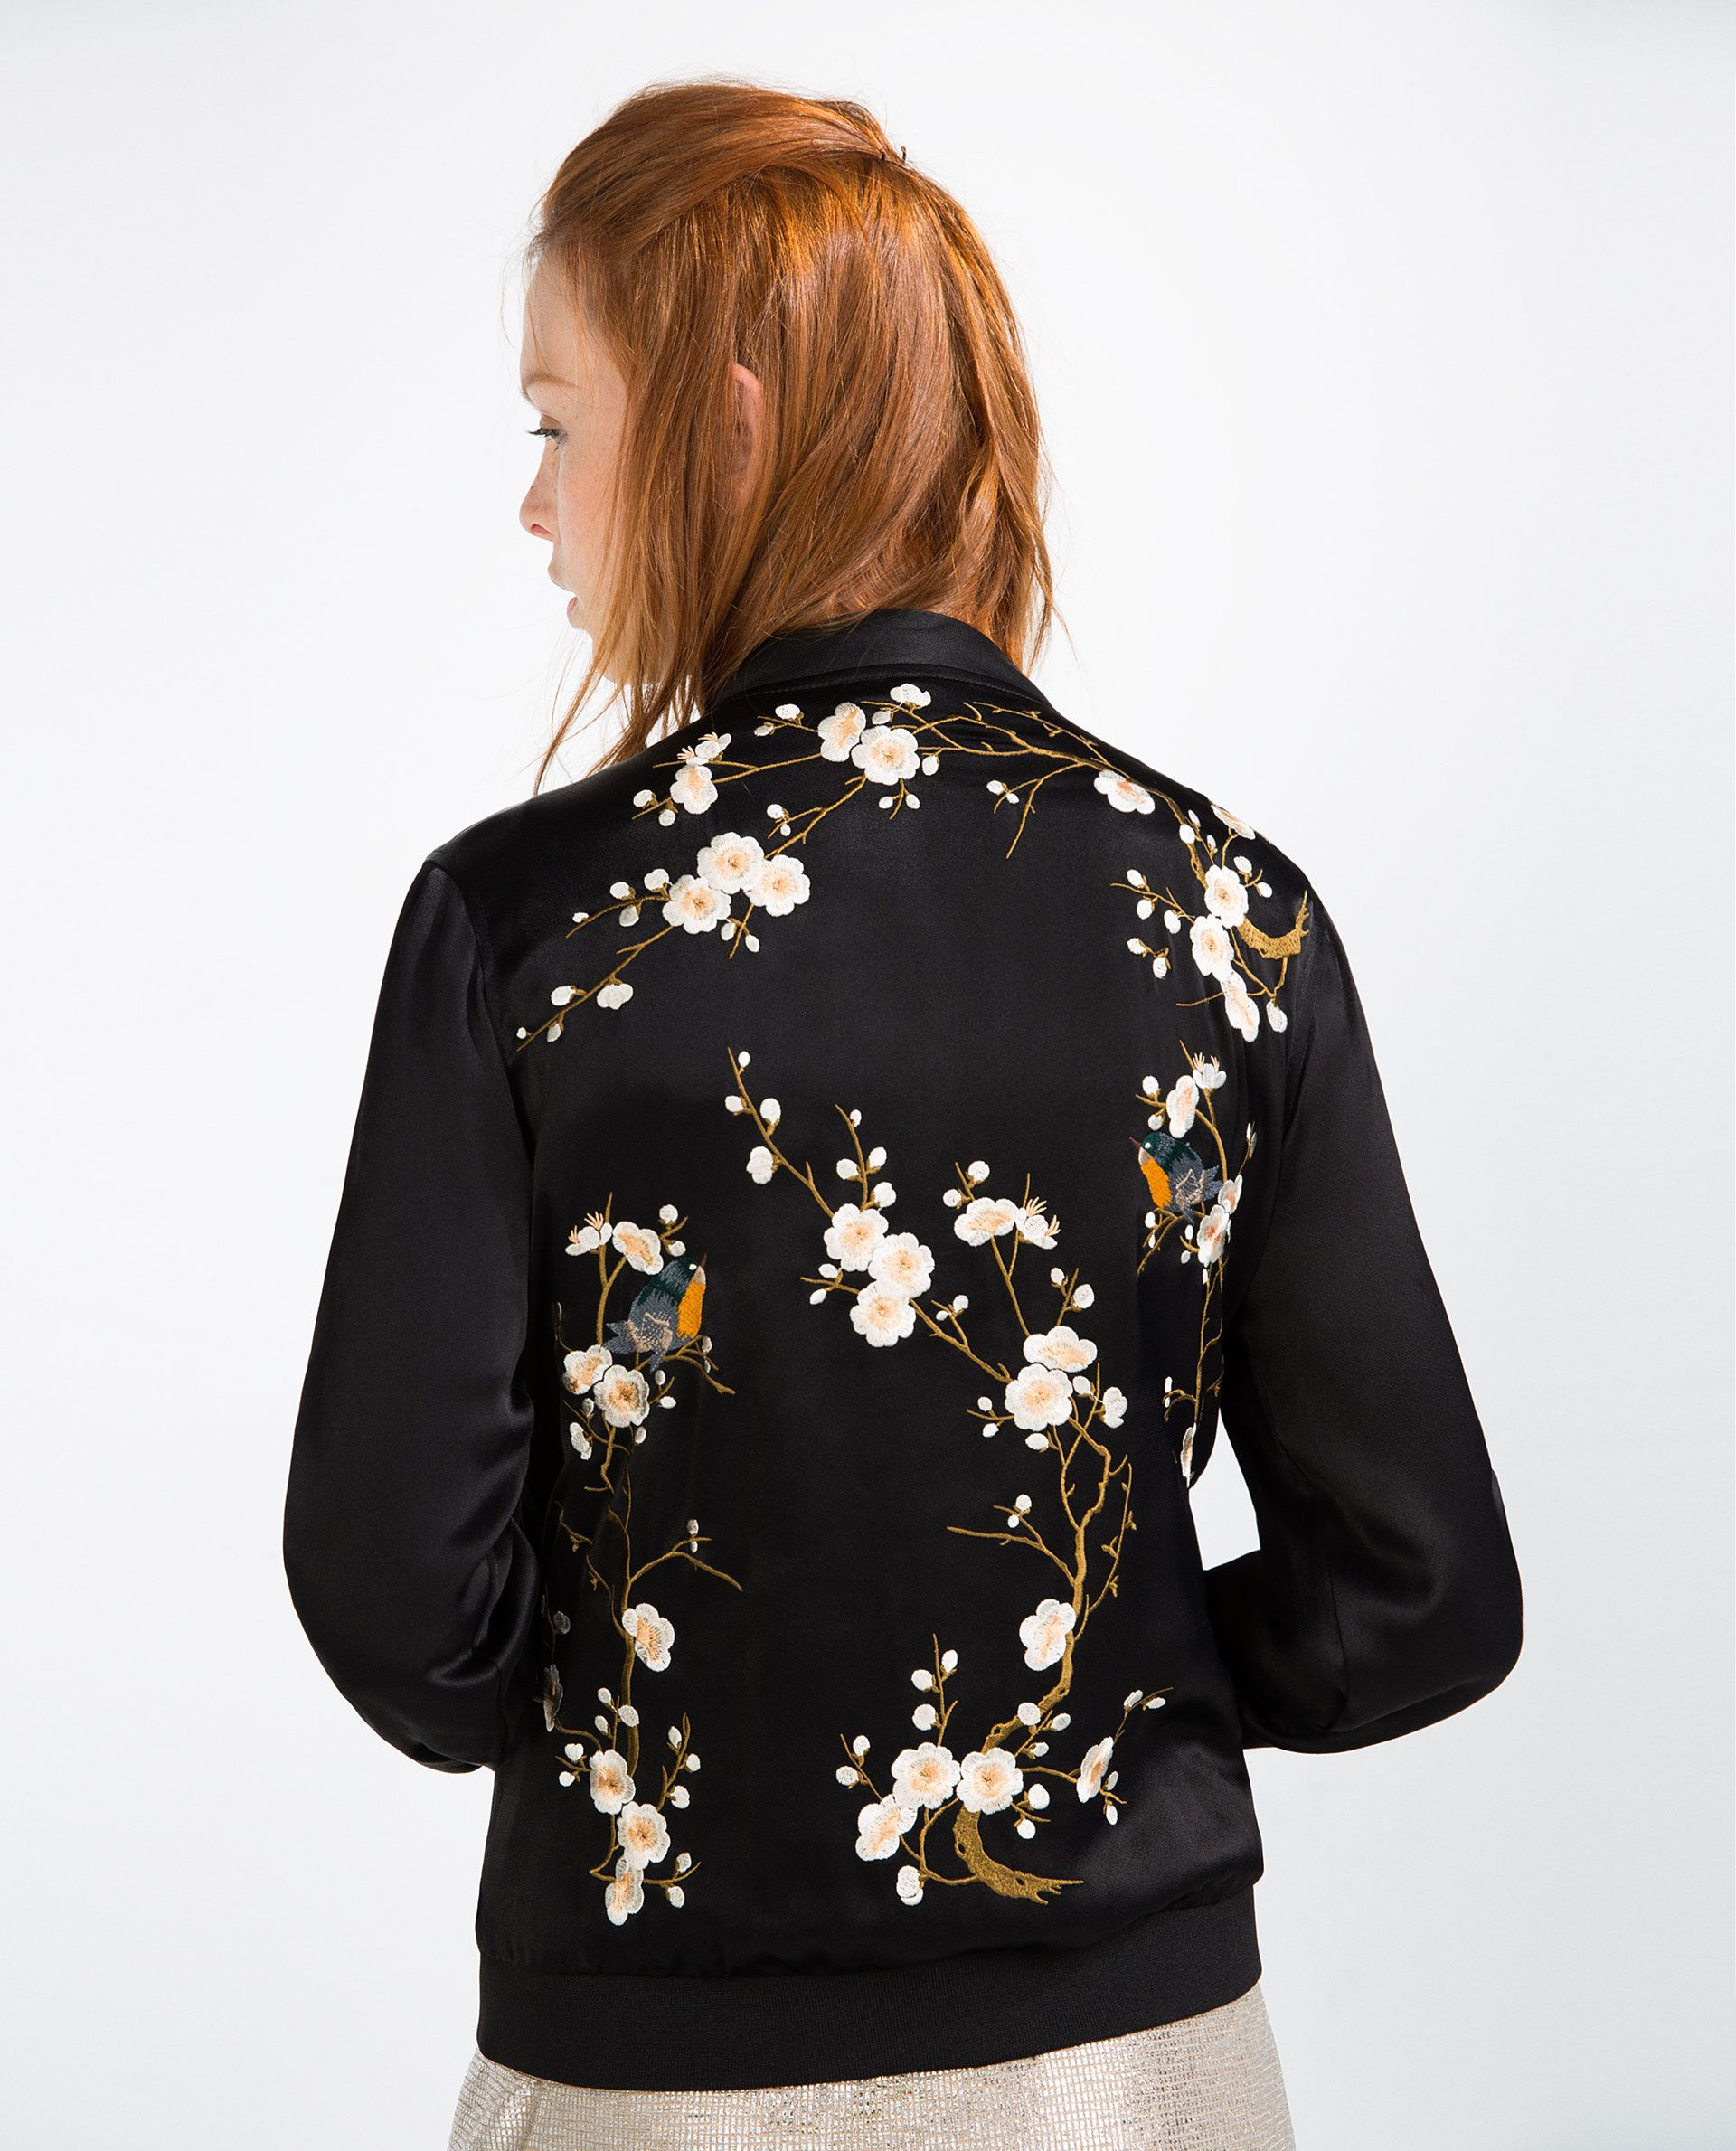 Zara Woman's Floral Embroidered Bomber Floral Embroidered Bomber Jacket  (sold out) Zara Jackets & Coats